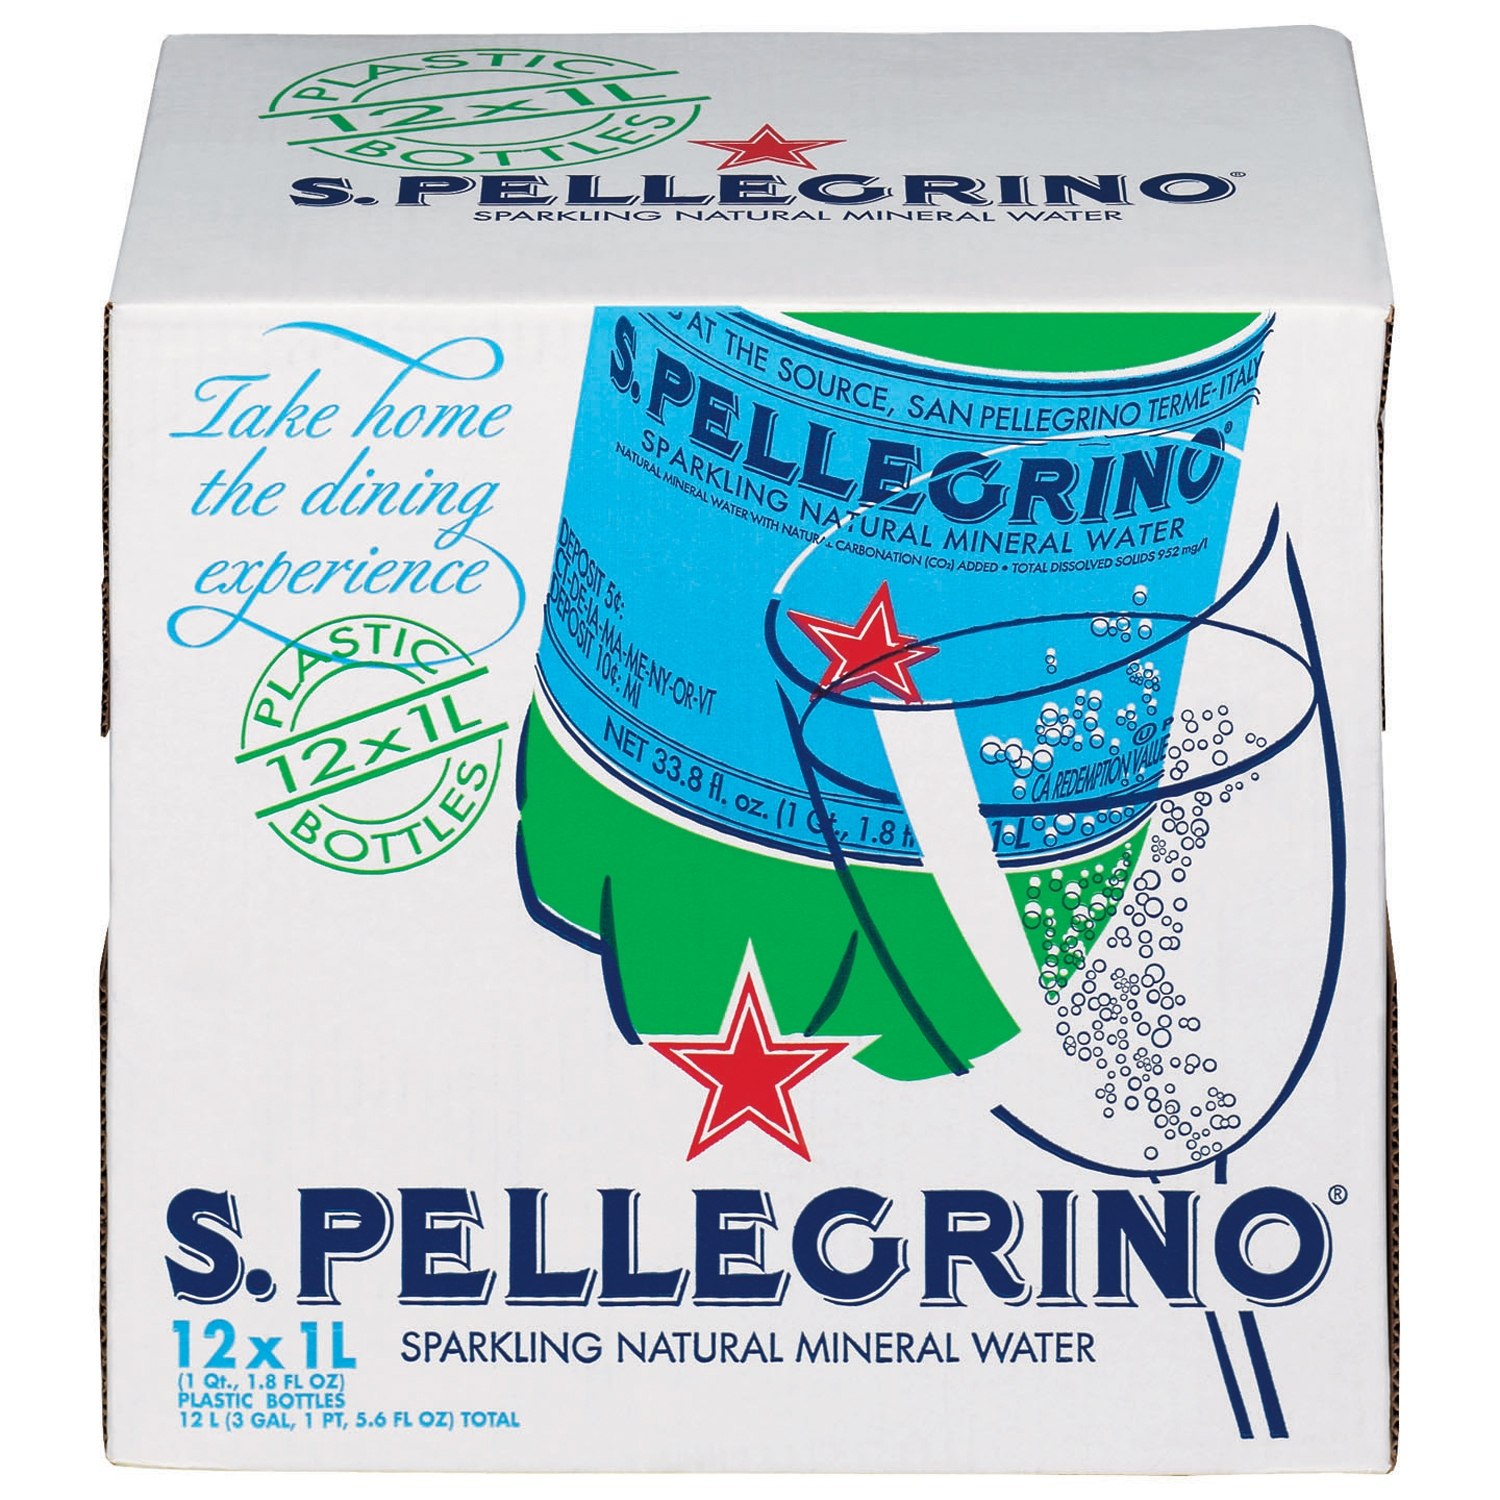 S.Pellegrino Sparkling Natural Mineral Water, 33.8-ounce plastic bottles (Pack of 12)